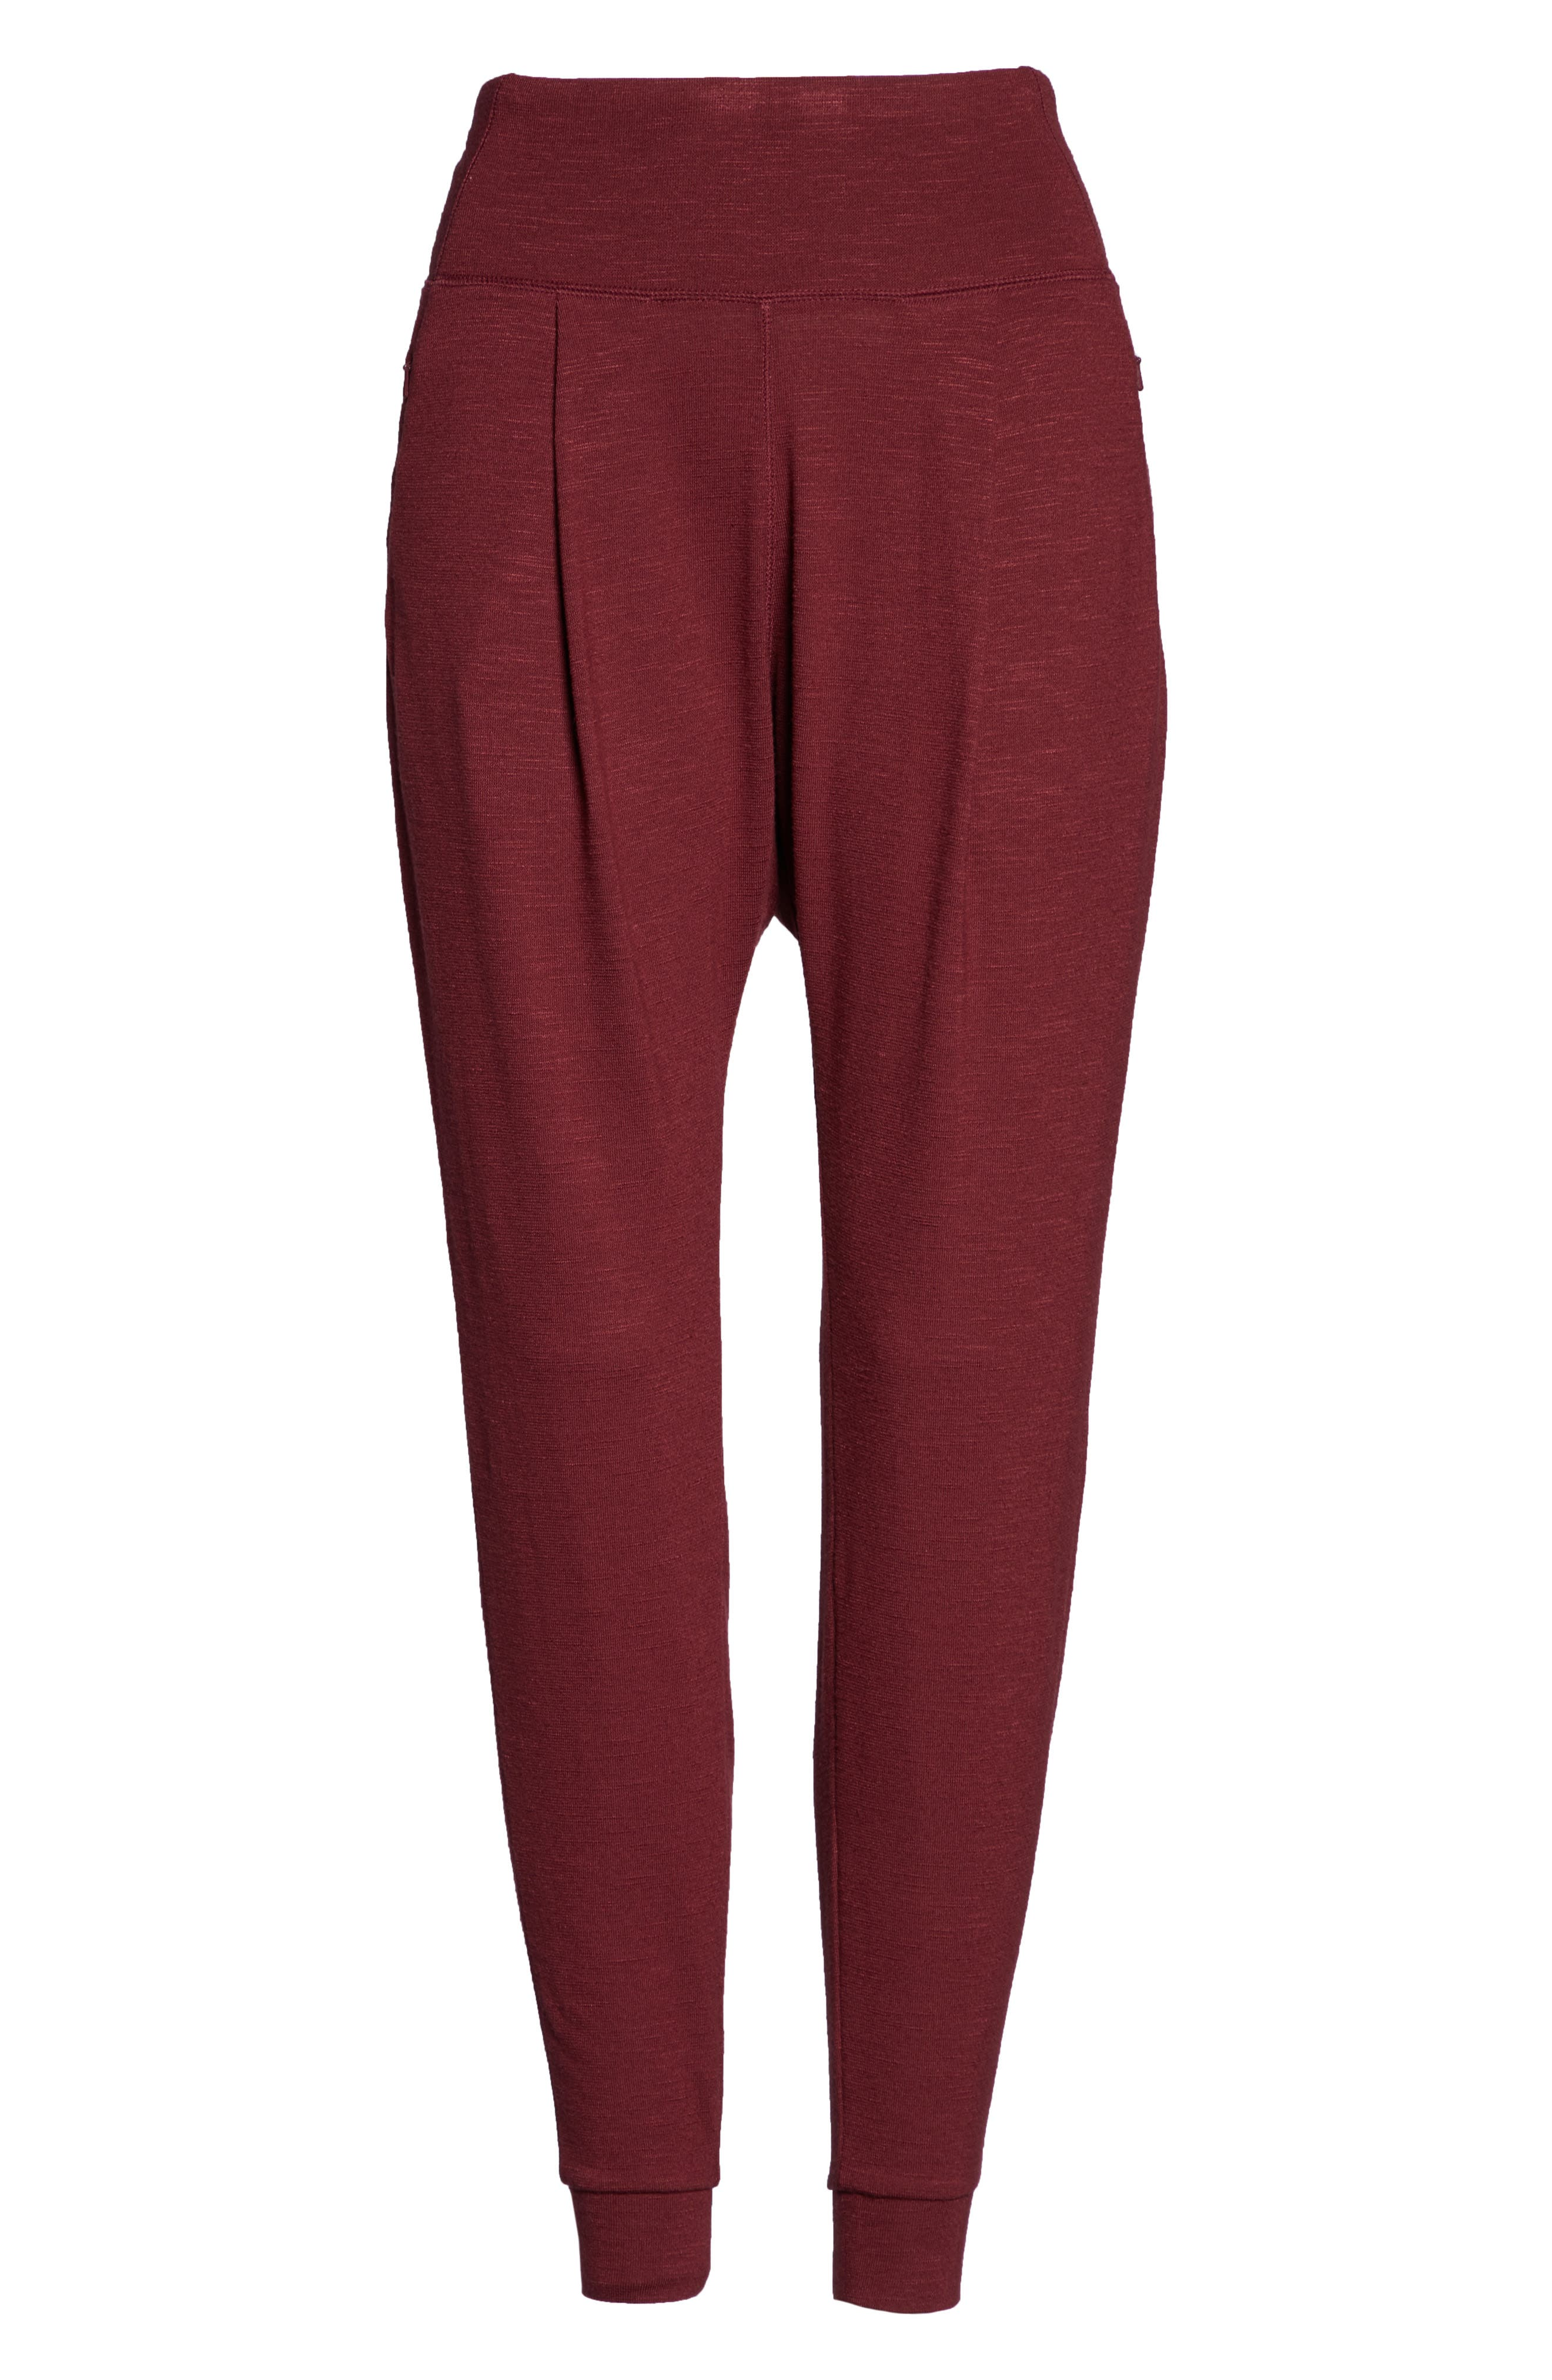 ZELLA,                             Flow with It Ankle Pants,                             Alternate thumbnail 7, color,                             RED TANNIN